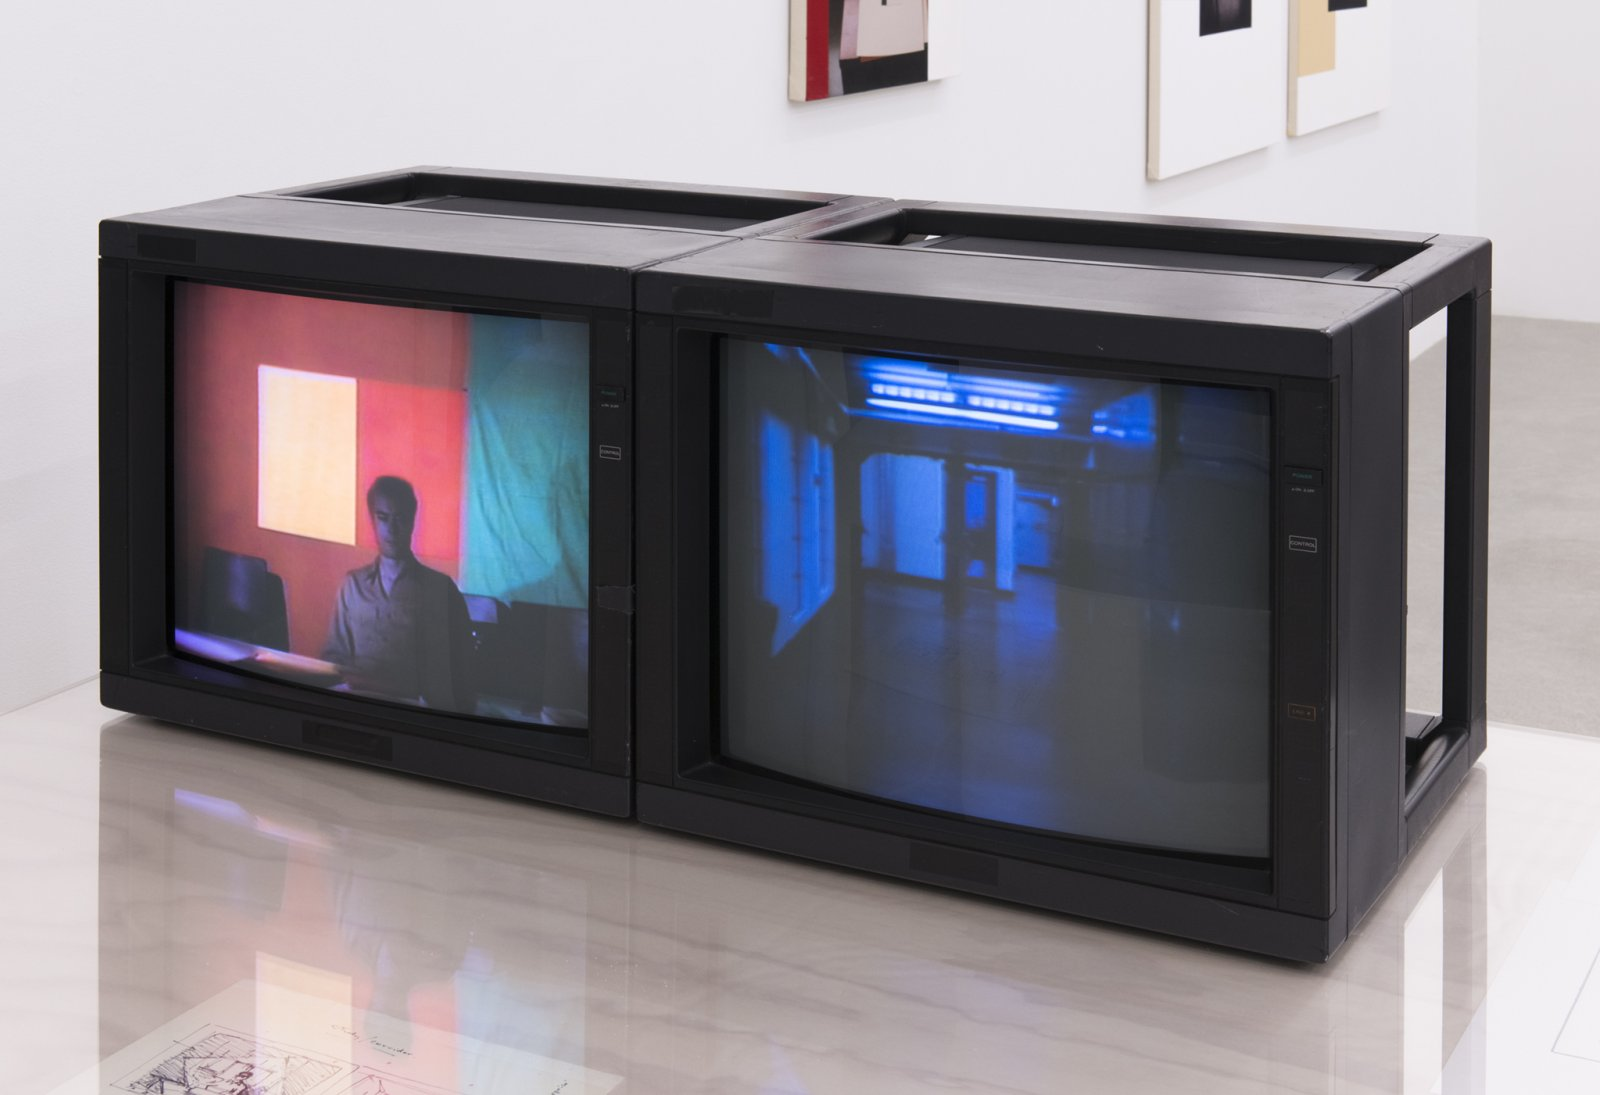 Ian Wallace, Study Corridor, 1983, 2 channel video, 3/4 inch video transferred to DVD by Ian Wallace